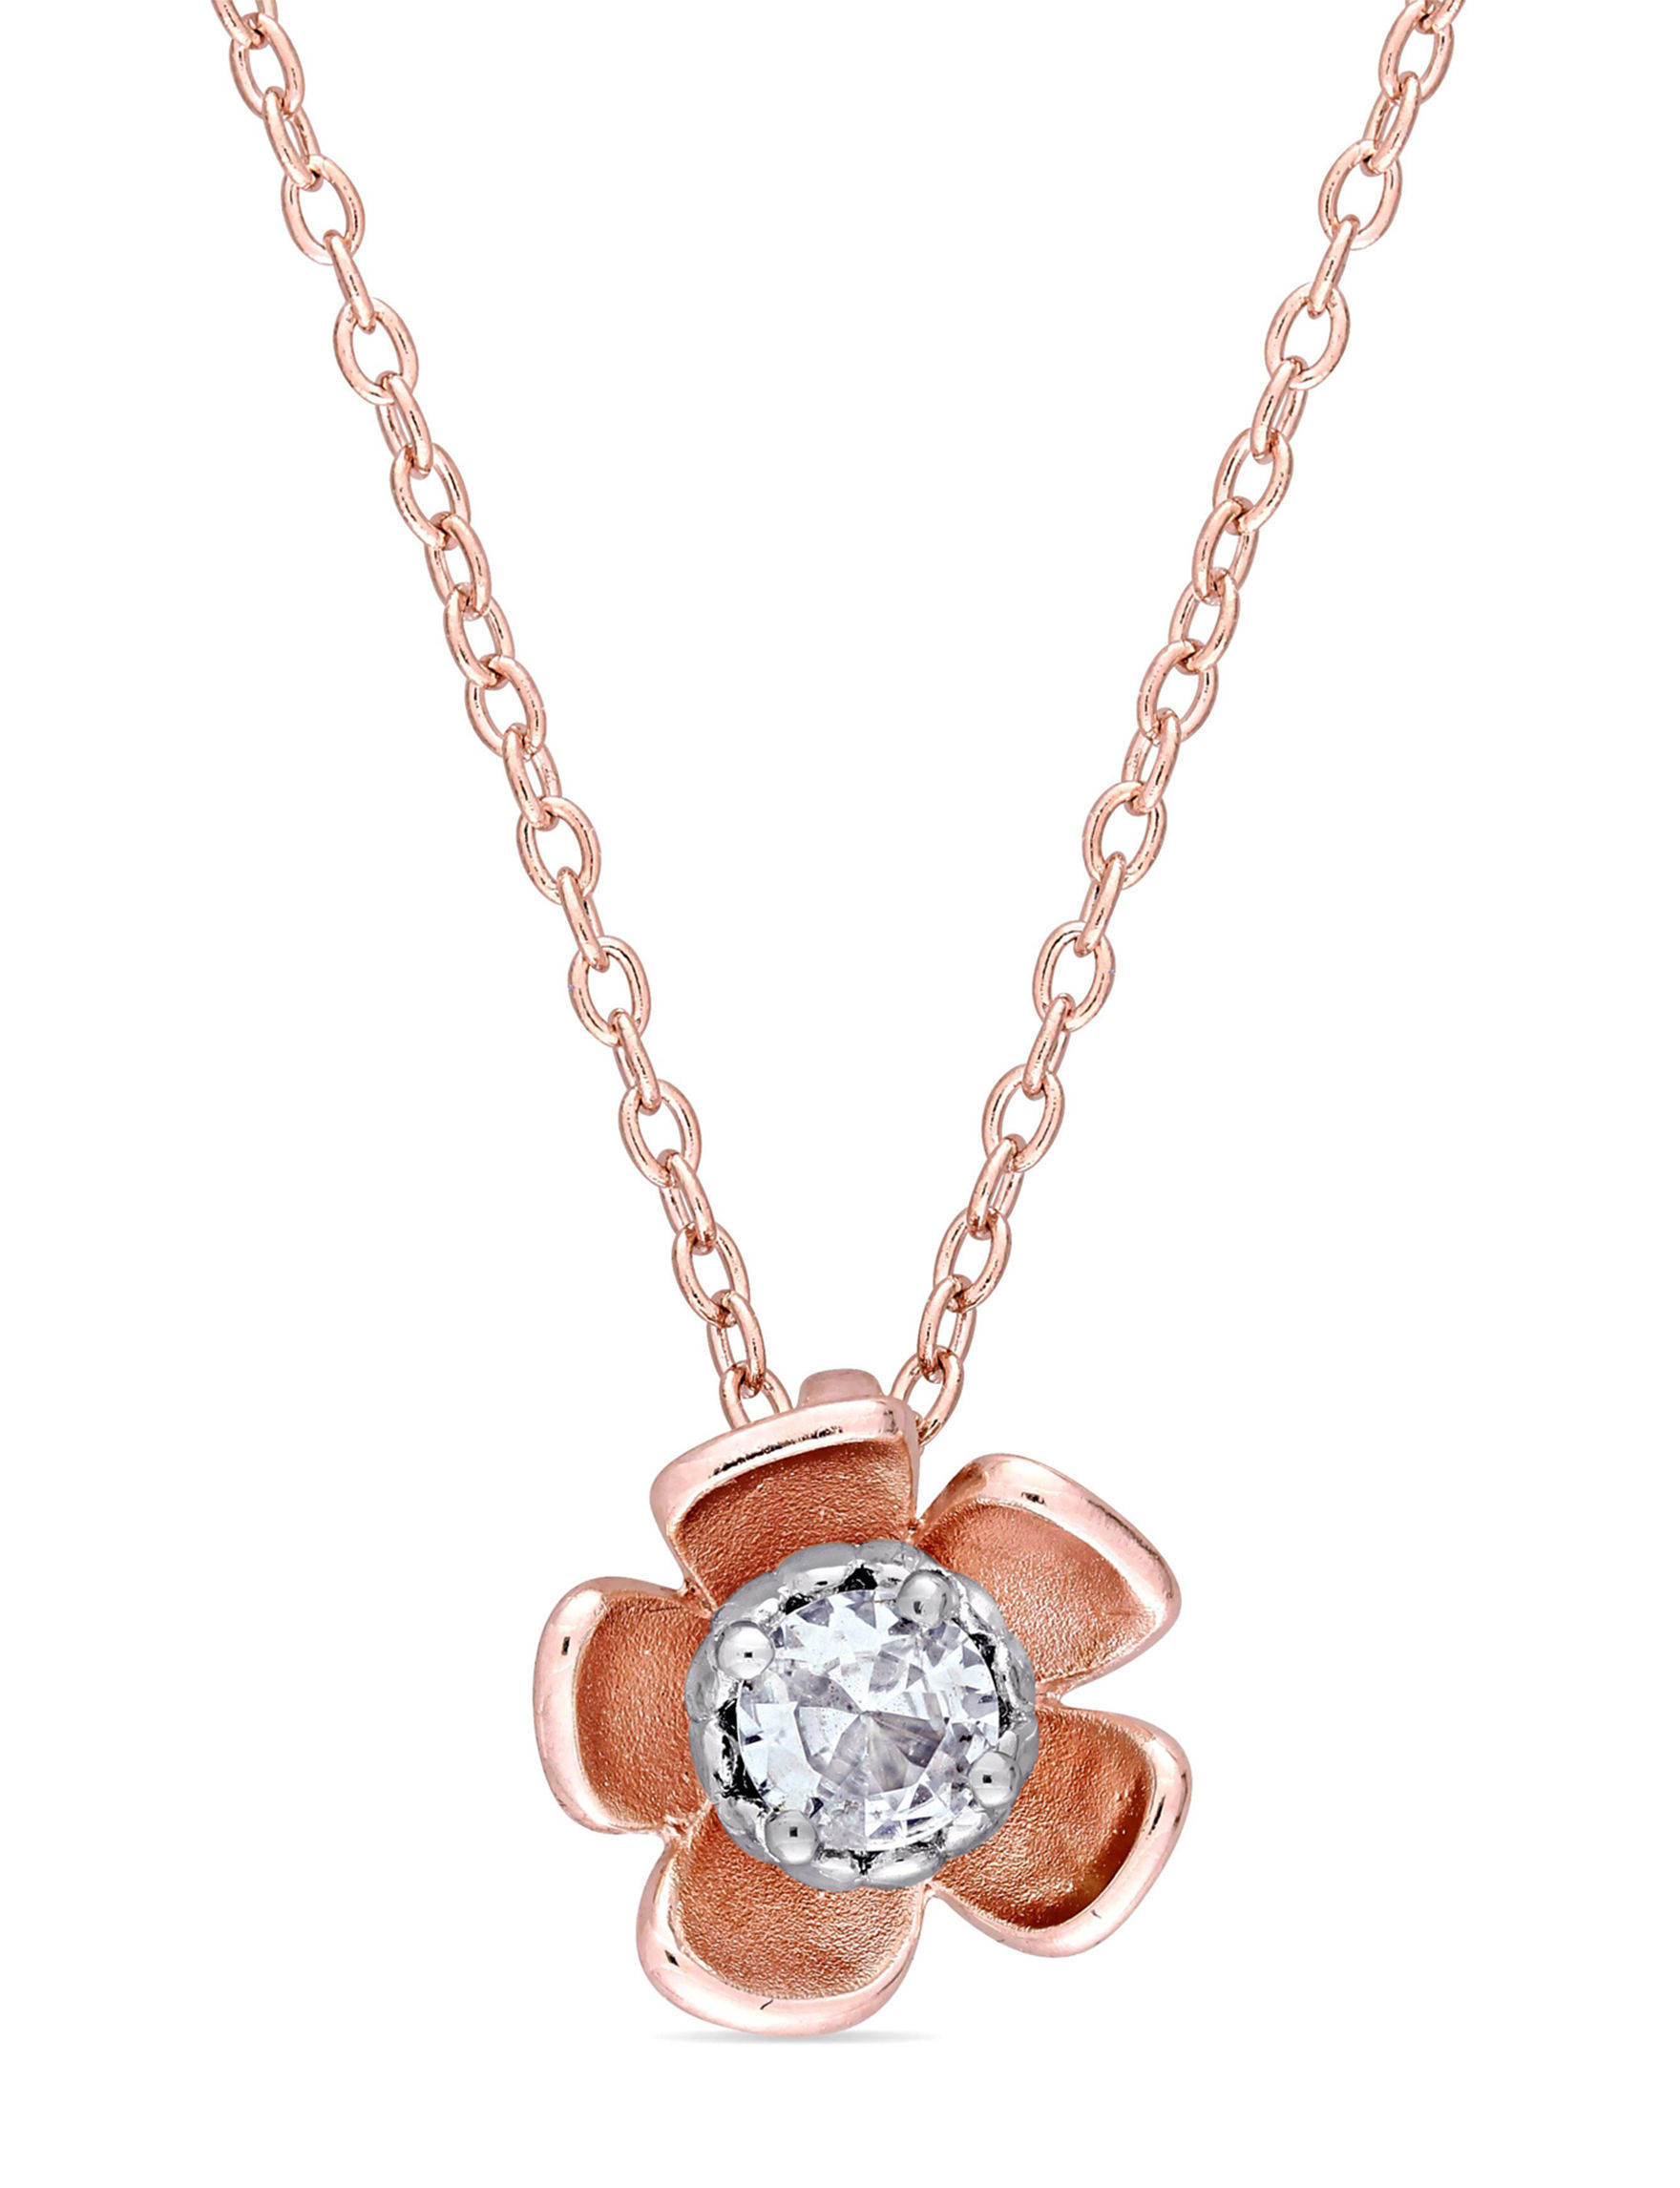 Laura Ashley Rose Gold Necklaces & Pendants Fine Jewelry